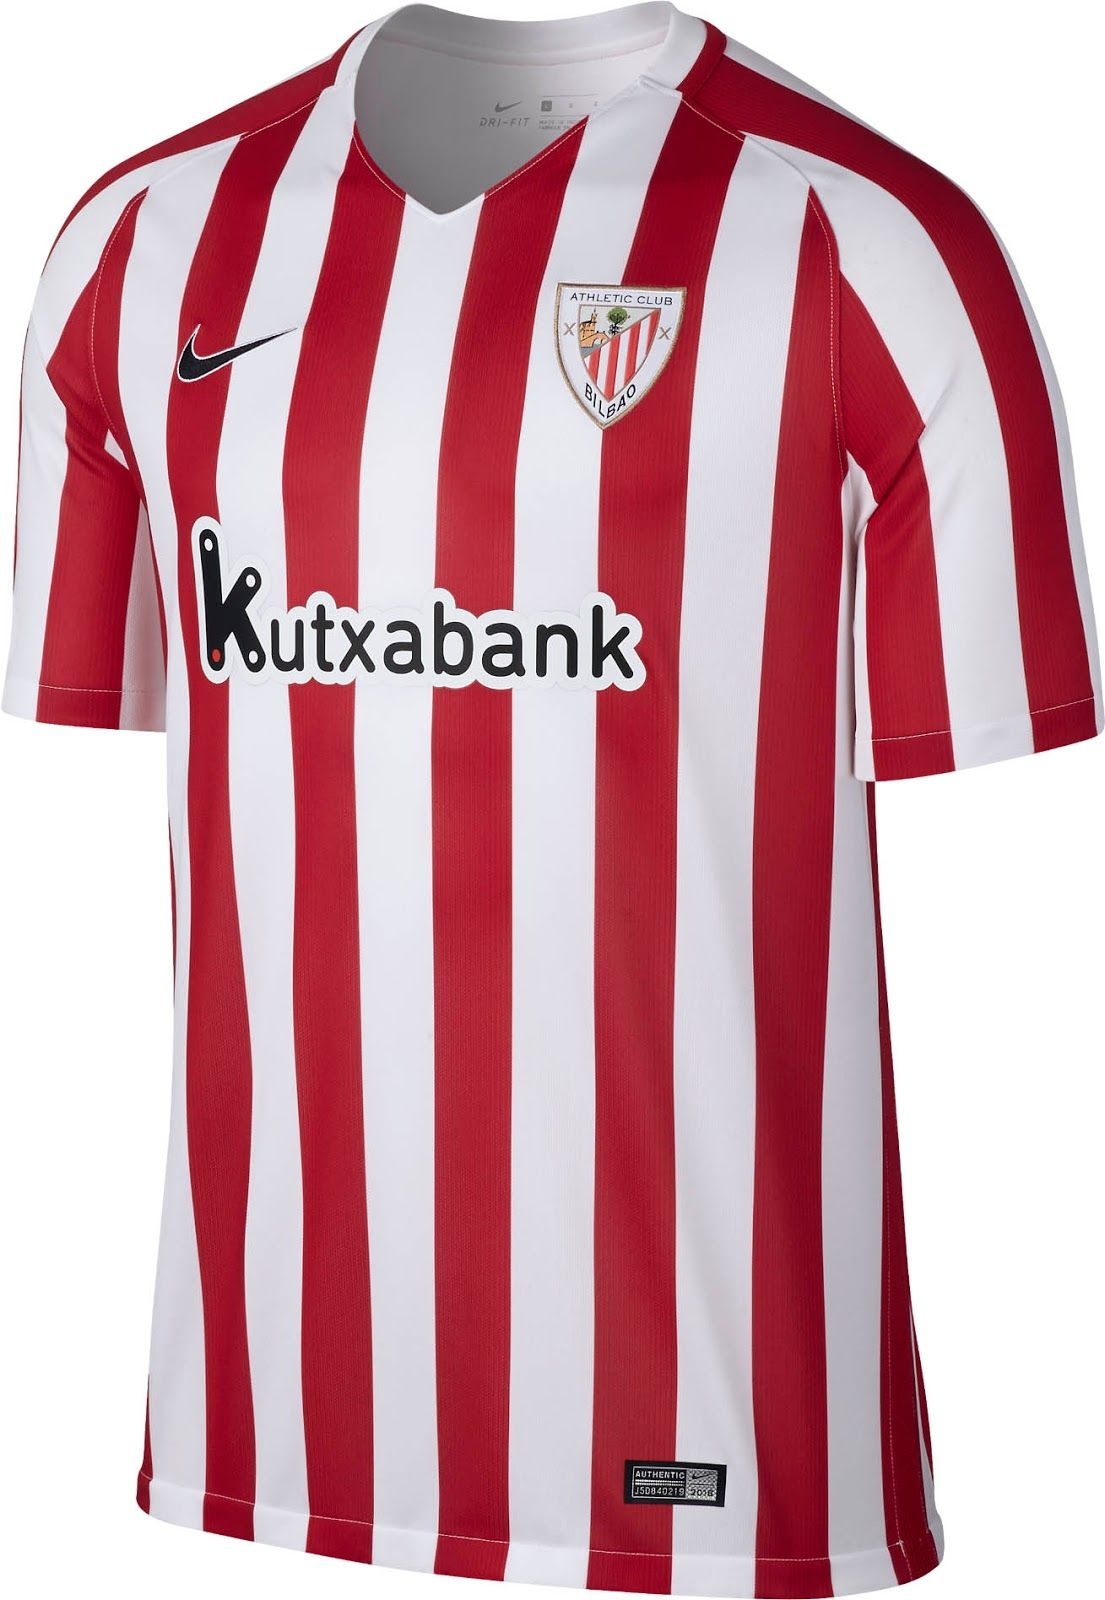 24b5b0077 Athletic Club Bilbao (Spain) - 2016 2017 Nike Home Shirt